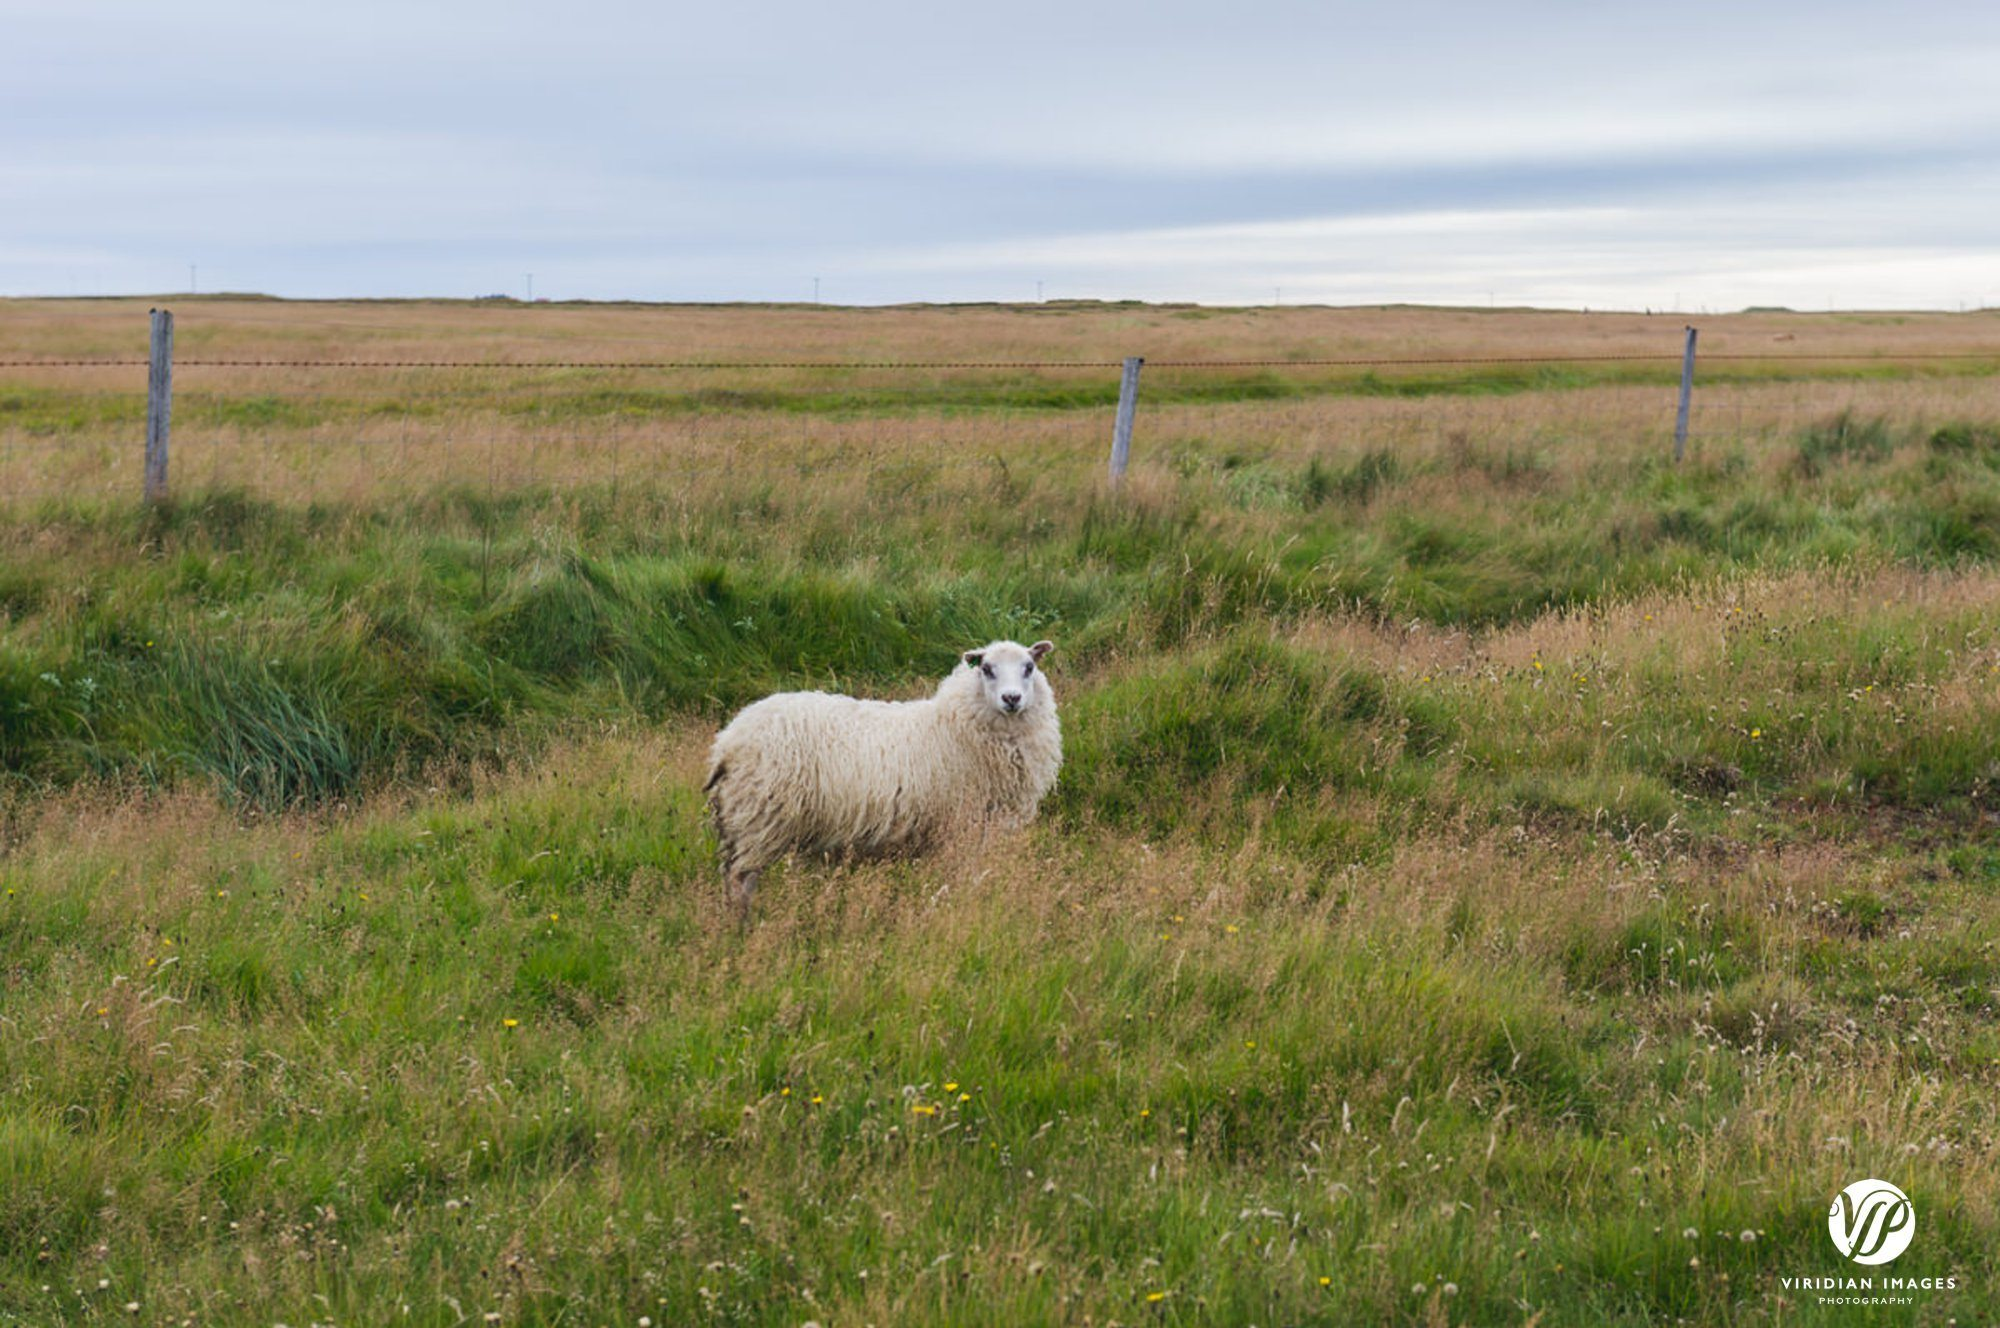 Icelandic Sheep grazing in field in Iceland